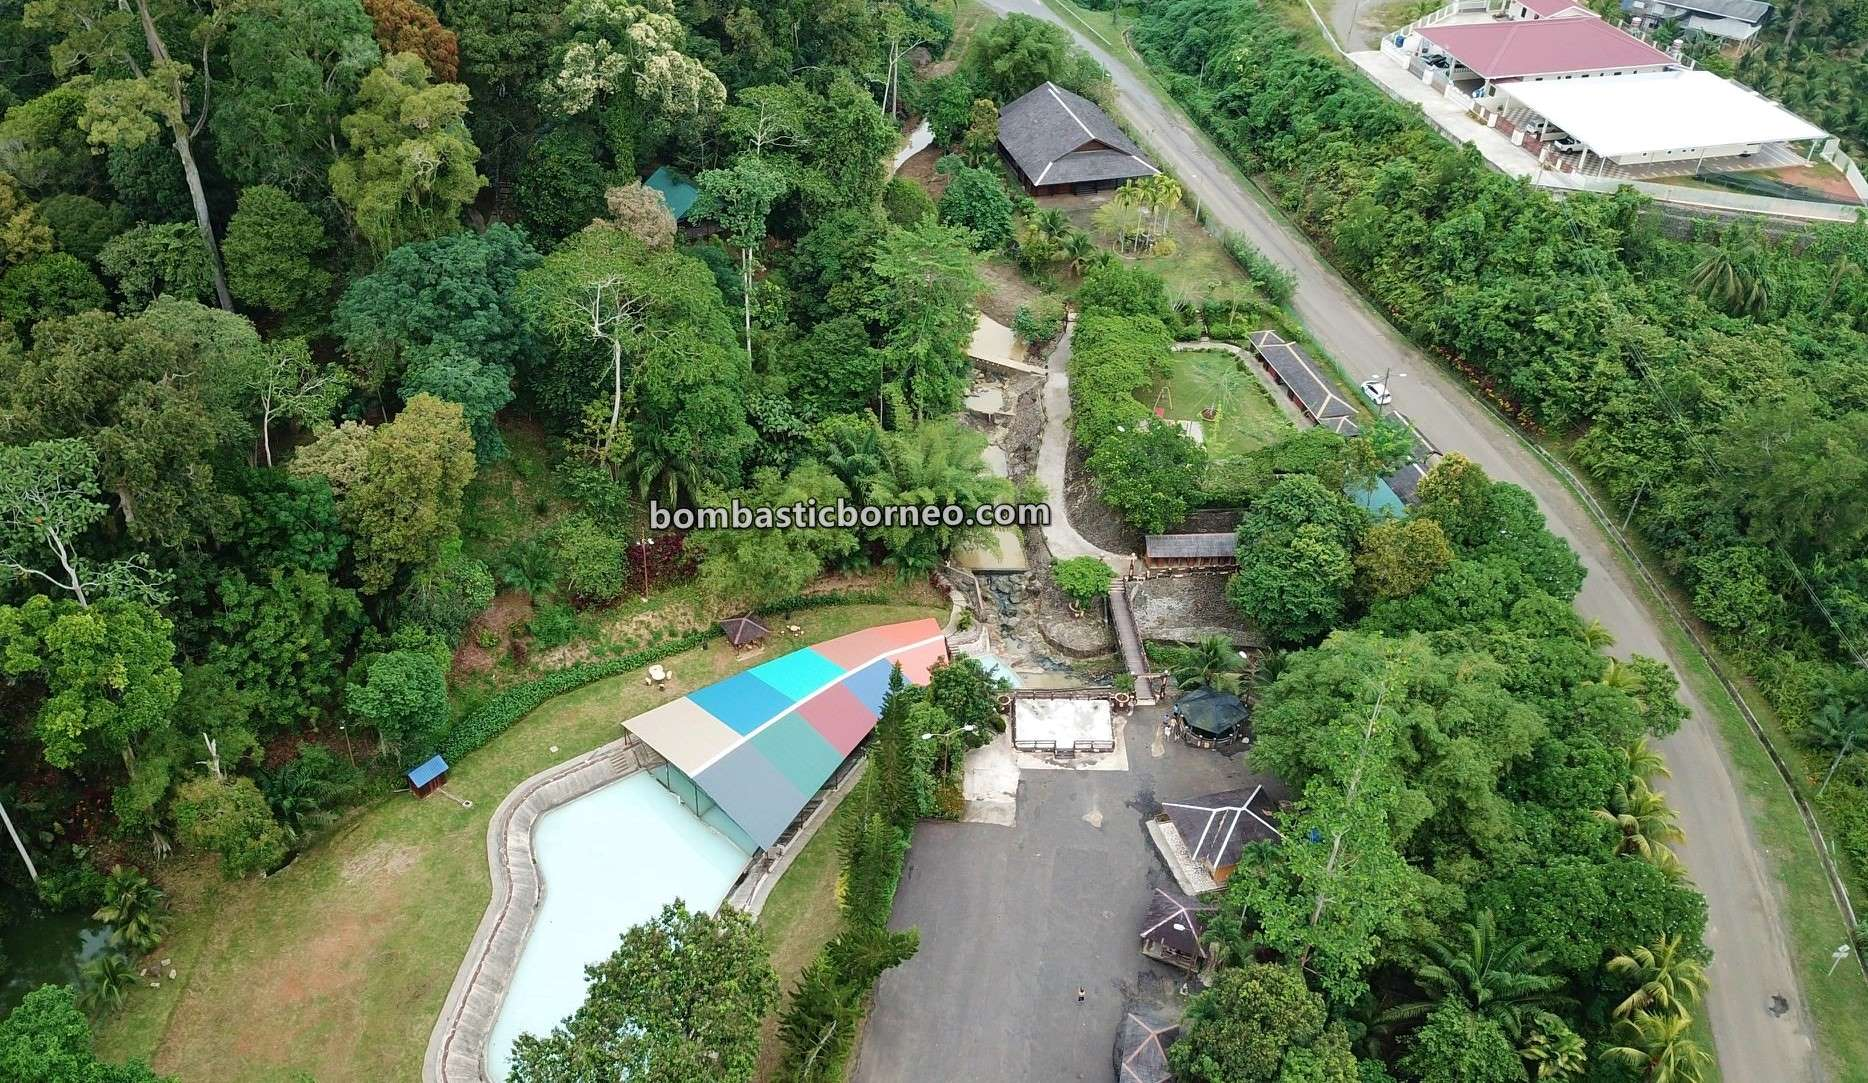 hot spring, healthy, detox, nature, recreational, water park, destination, family vacation, Malaysia, Tourist attraction, Travel guide, Borneo, 探索婆罗洲游踪, 马来西亚沙巴, 斗湖善勤温泉乐园,